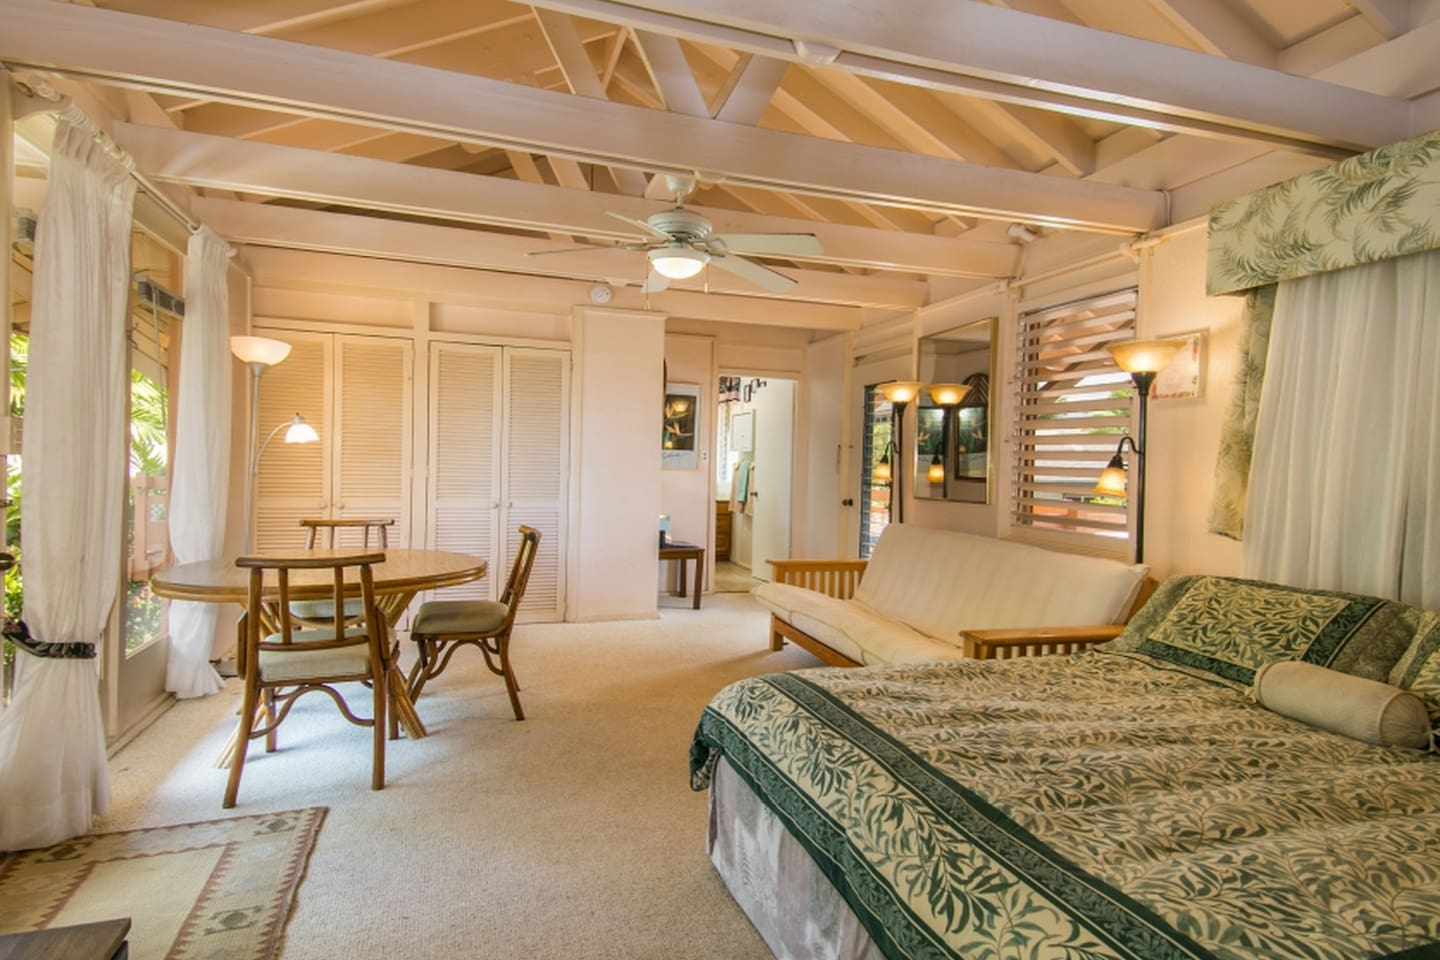 Plenty of space  with queen-size bed, futon and table for dining or enjoying the view.